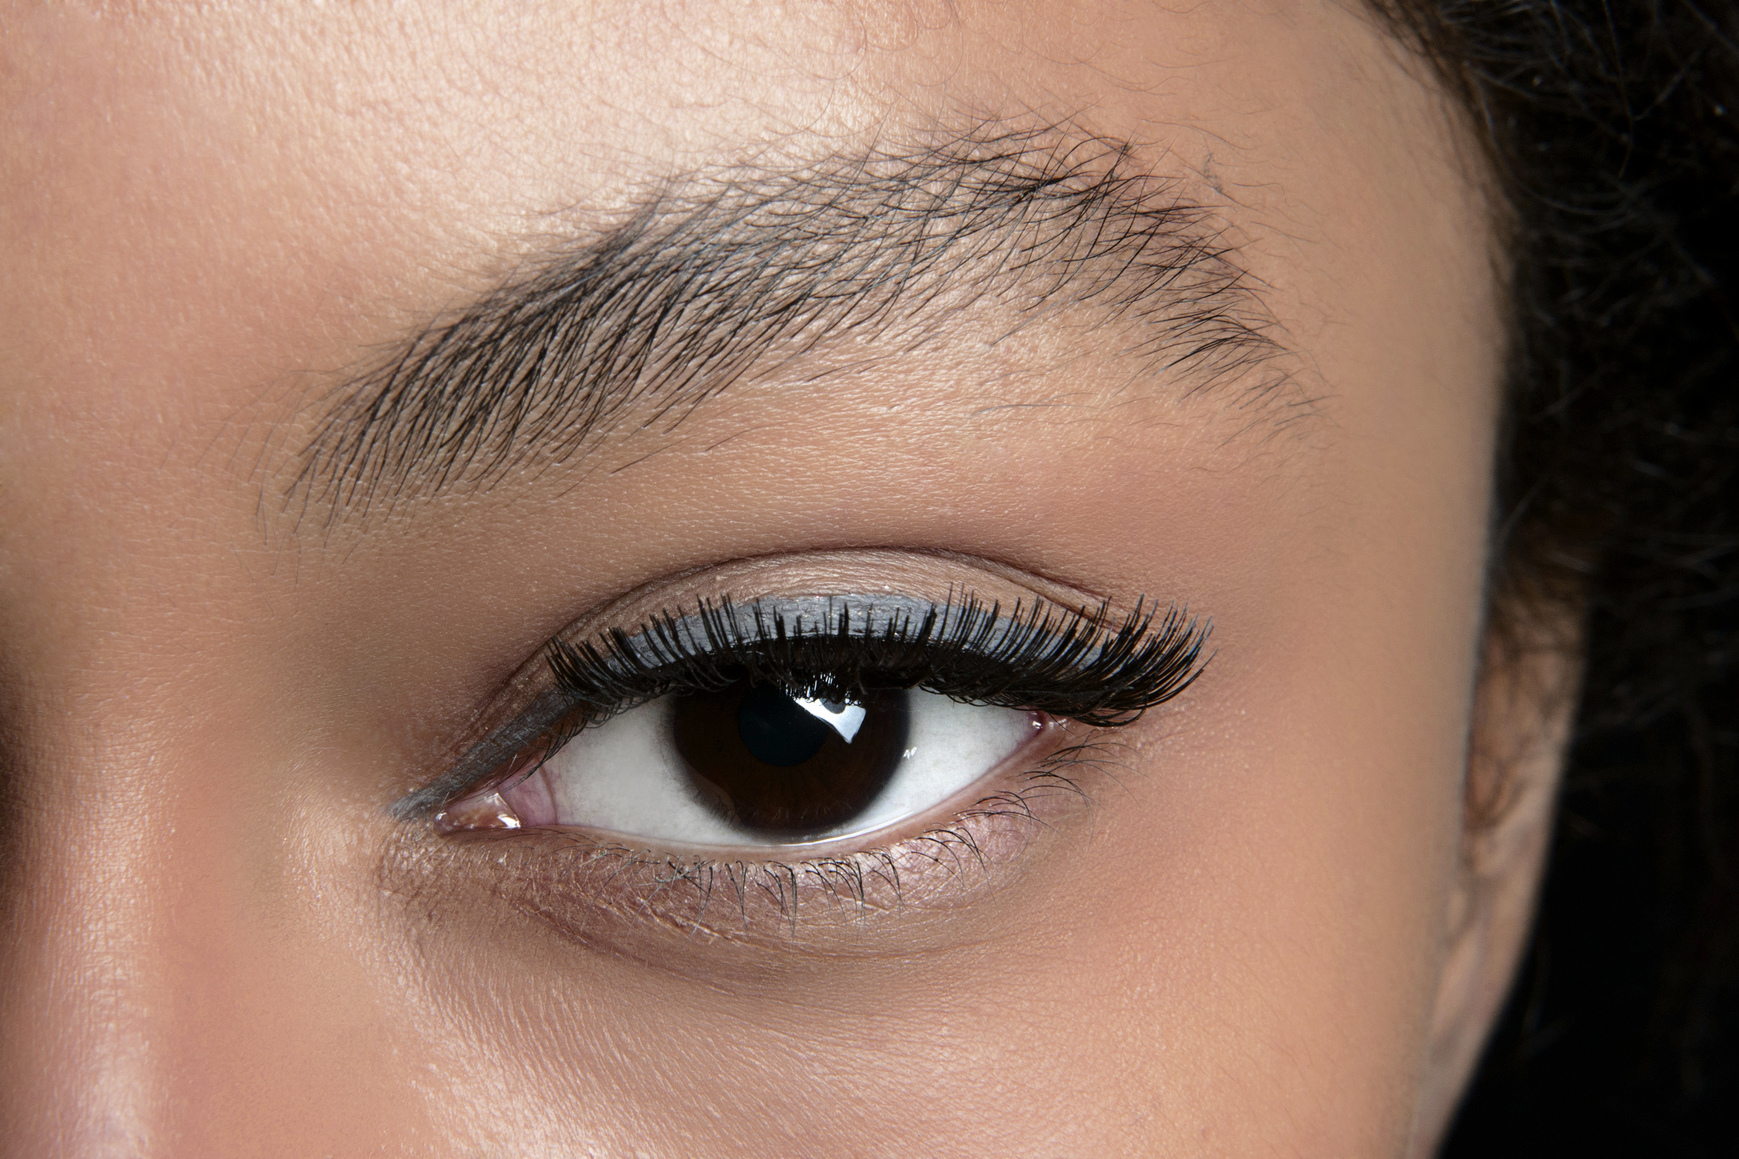 How To Remedy A Brow Plucking Disaster Stylecaster